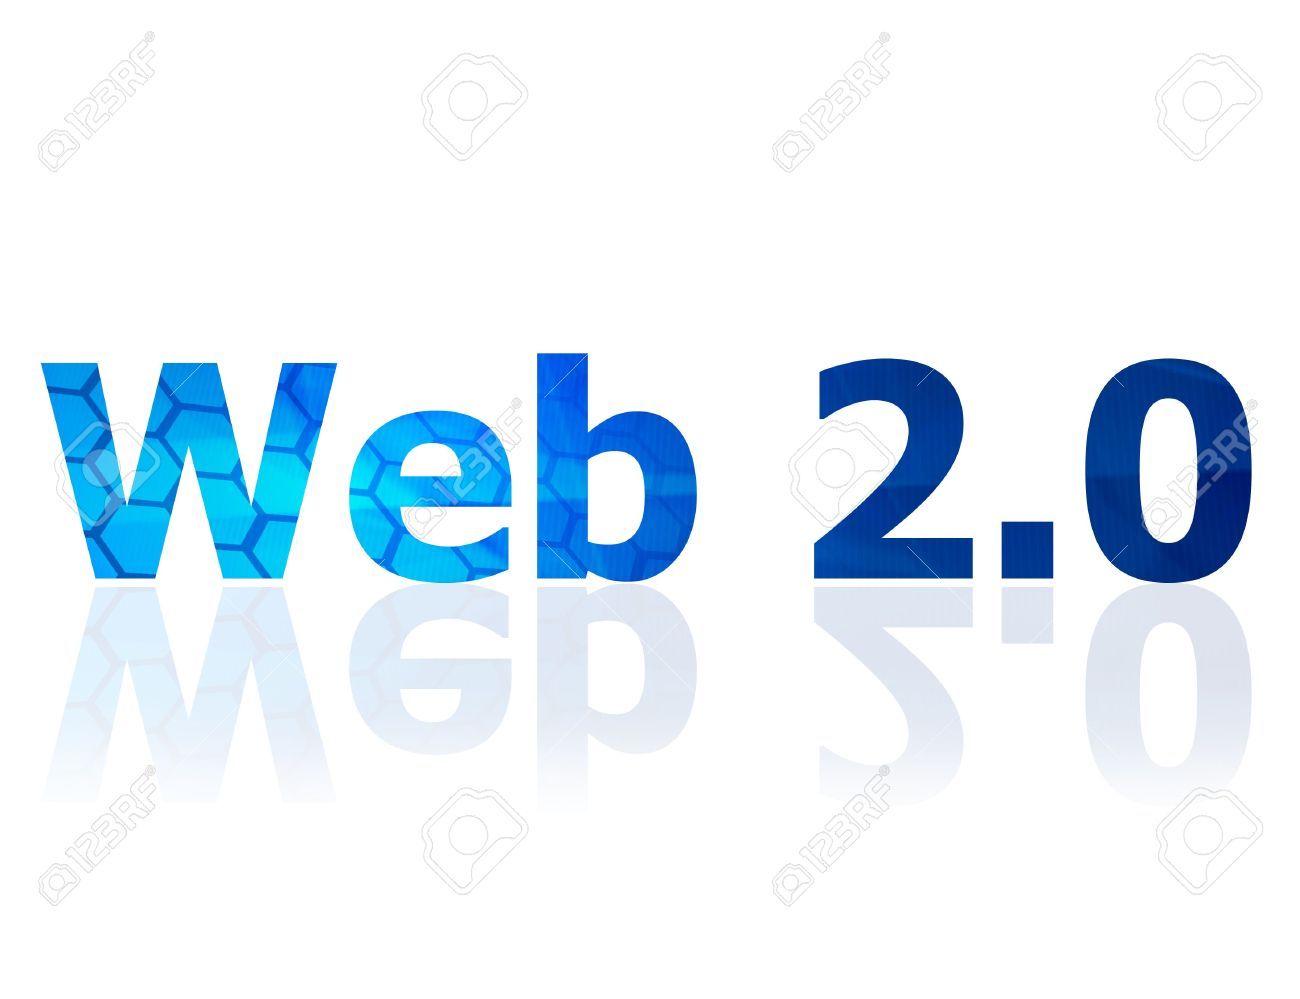 Creat 10 web 2.0 Backlinks On high PR